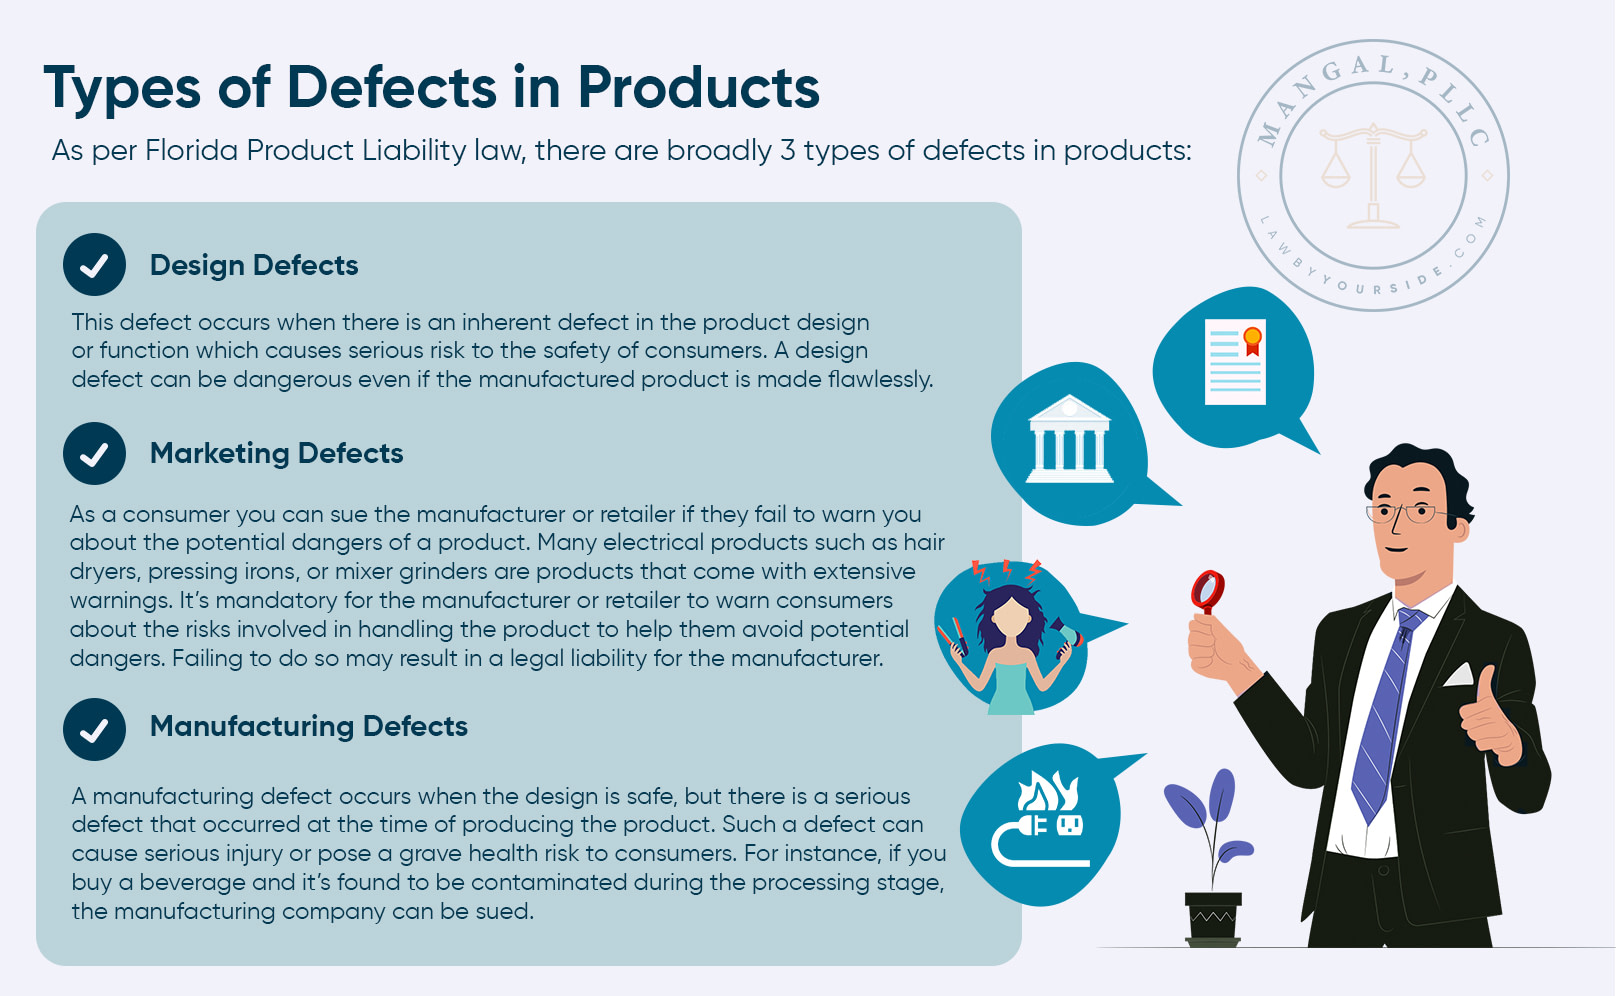 Types-of-Defects-in-Products